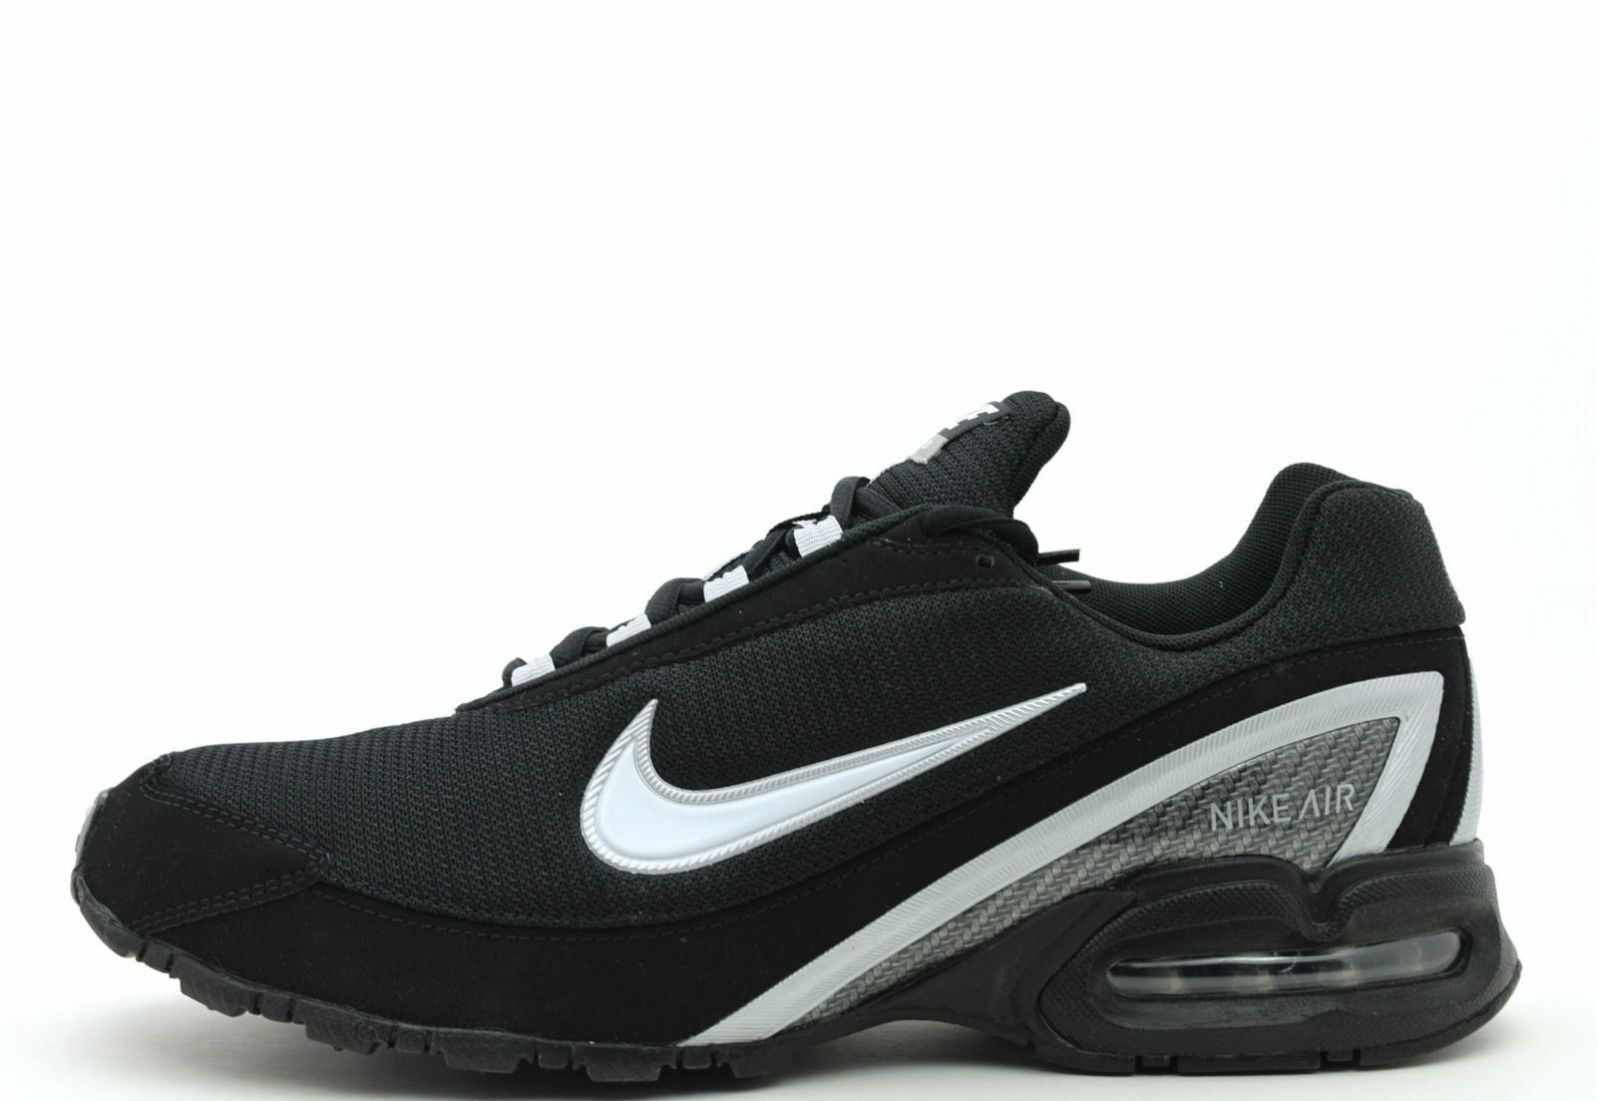 newest db1bf e60da NIB Men s Nike Air Max Torch 3 Running Invigor Sequent Shoes Sneakers IV  Black · NIB Men. Close. NIB Men